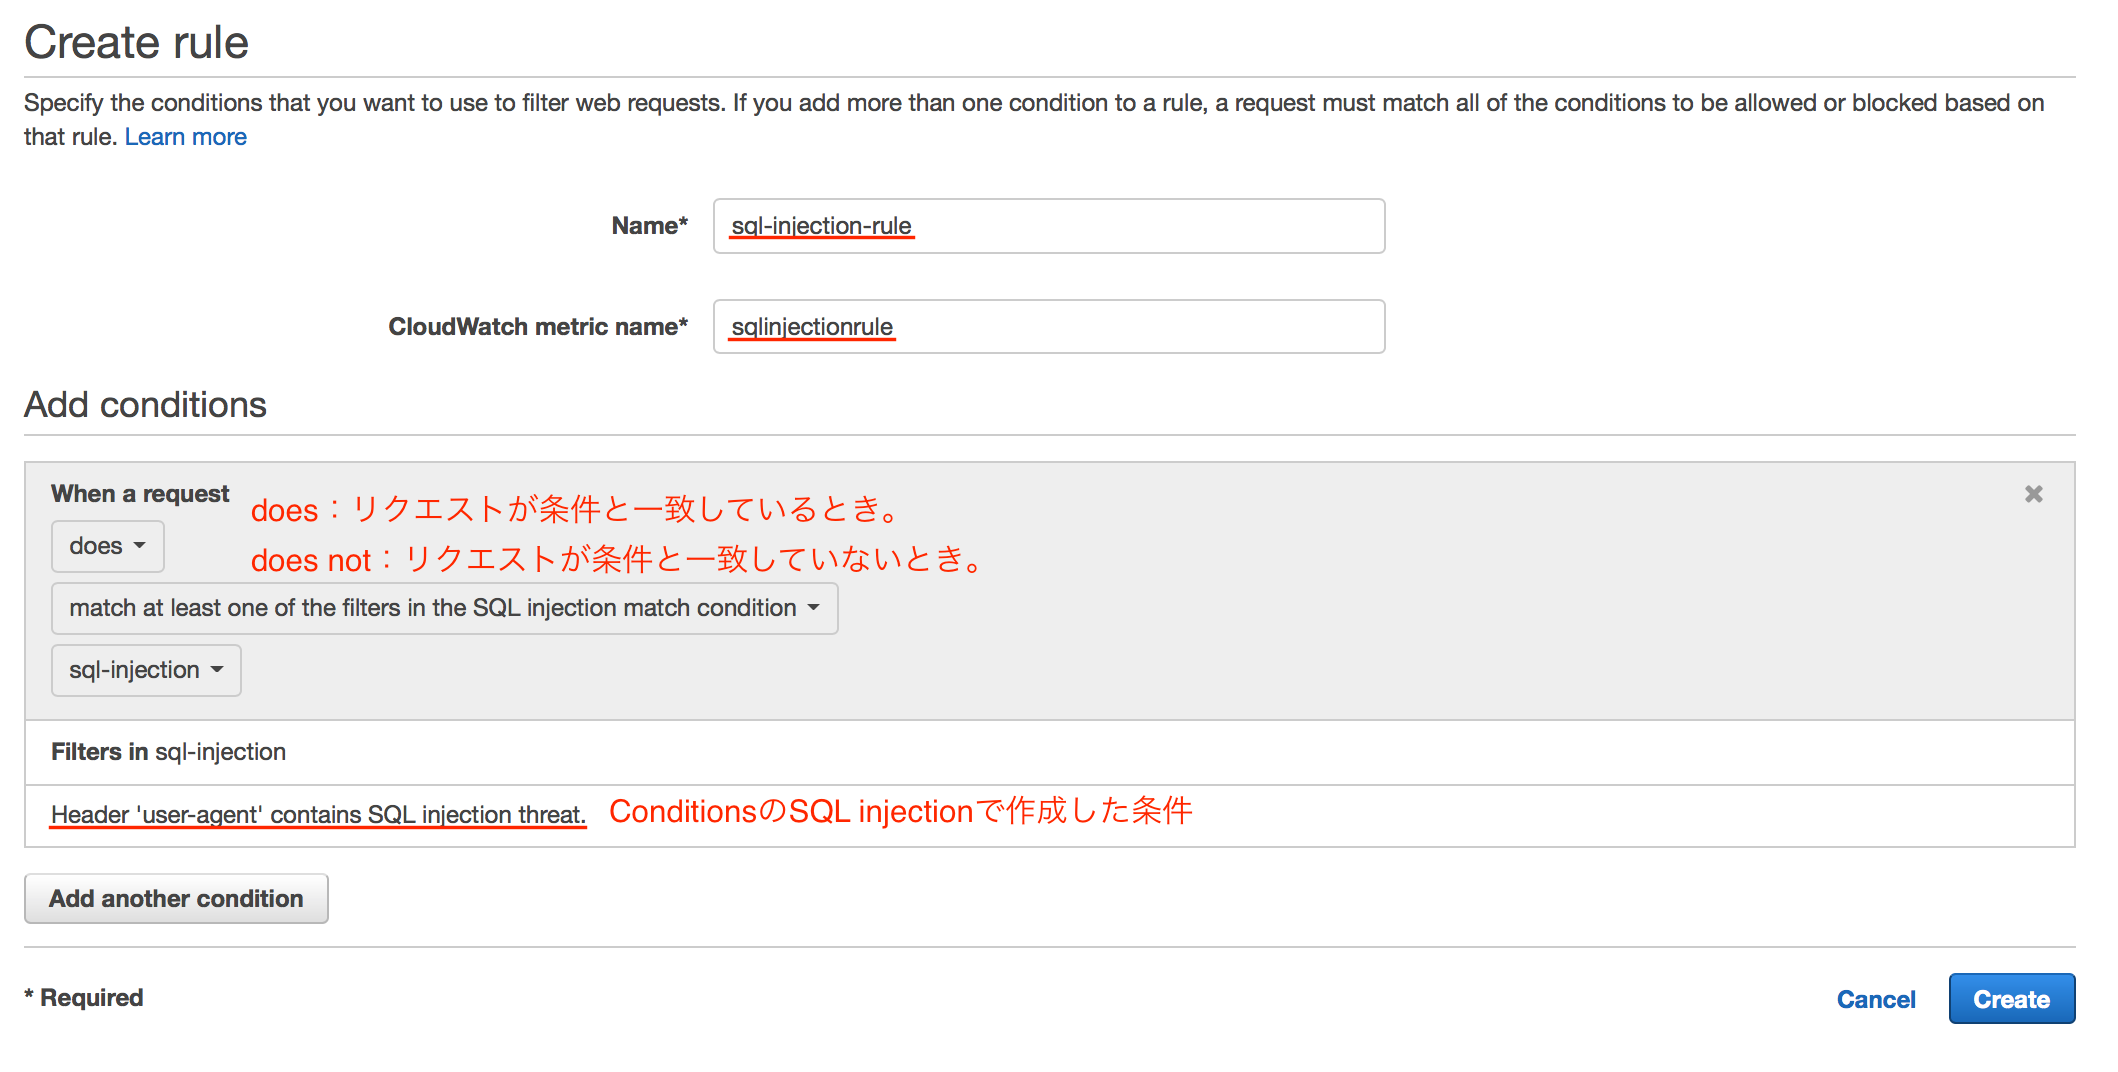 aws-waf_sql-injection_2015120407.png